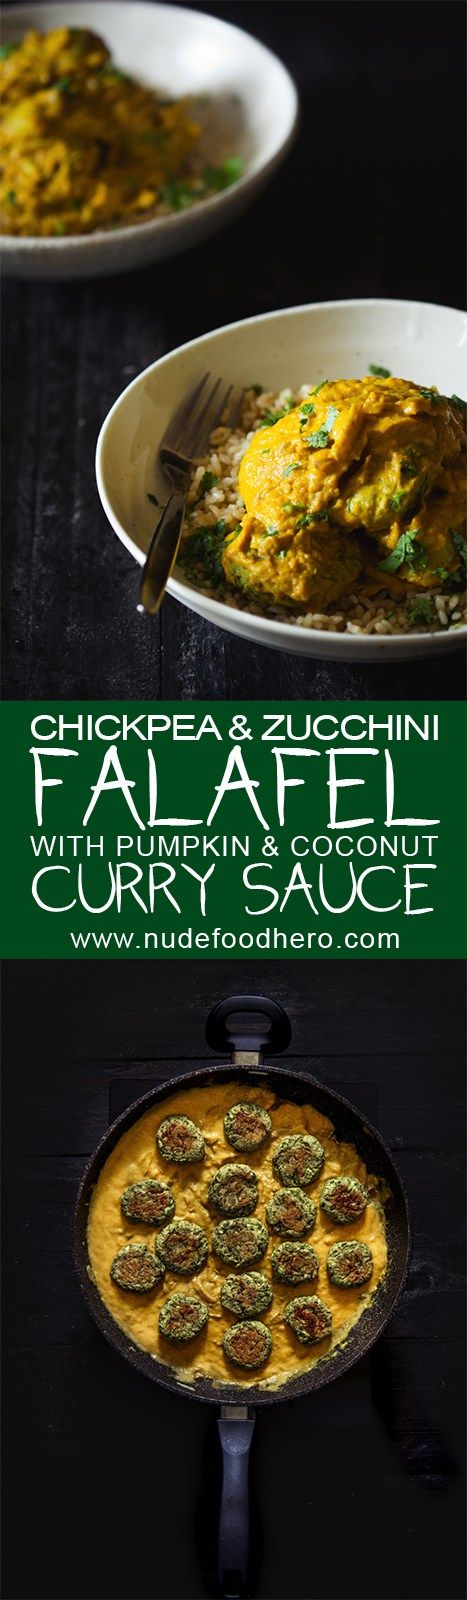 Indian and Middle Eastern cuisines collide into vegetarian, comfort food awesomeness with zucchini falafel swimming in a coconut and pumpkin…